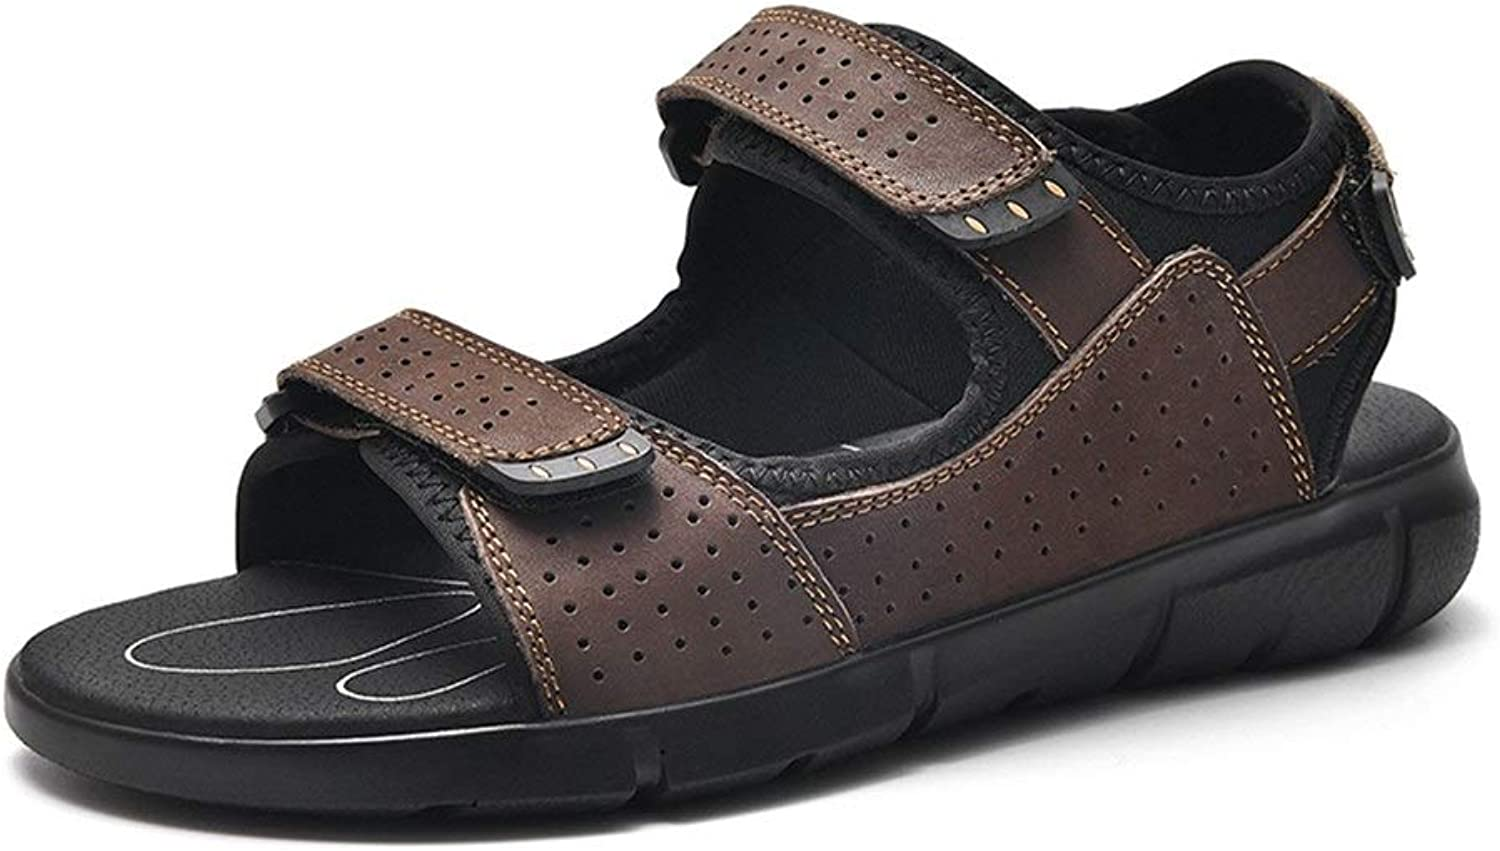 Easy Go Shopping Classic Outdoor Sandals for Men Genuine Leather Summer Fashion Beach shoes Lightweight Anti-slip Flat Round Open Toe Hook&loop Strap Cricket shoes (color   Brown, Size   10.5 UK)